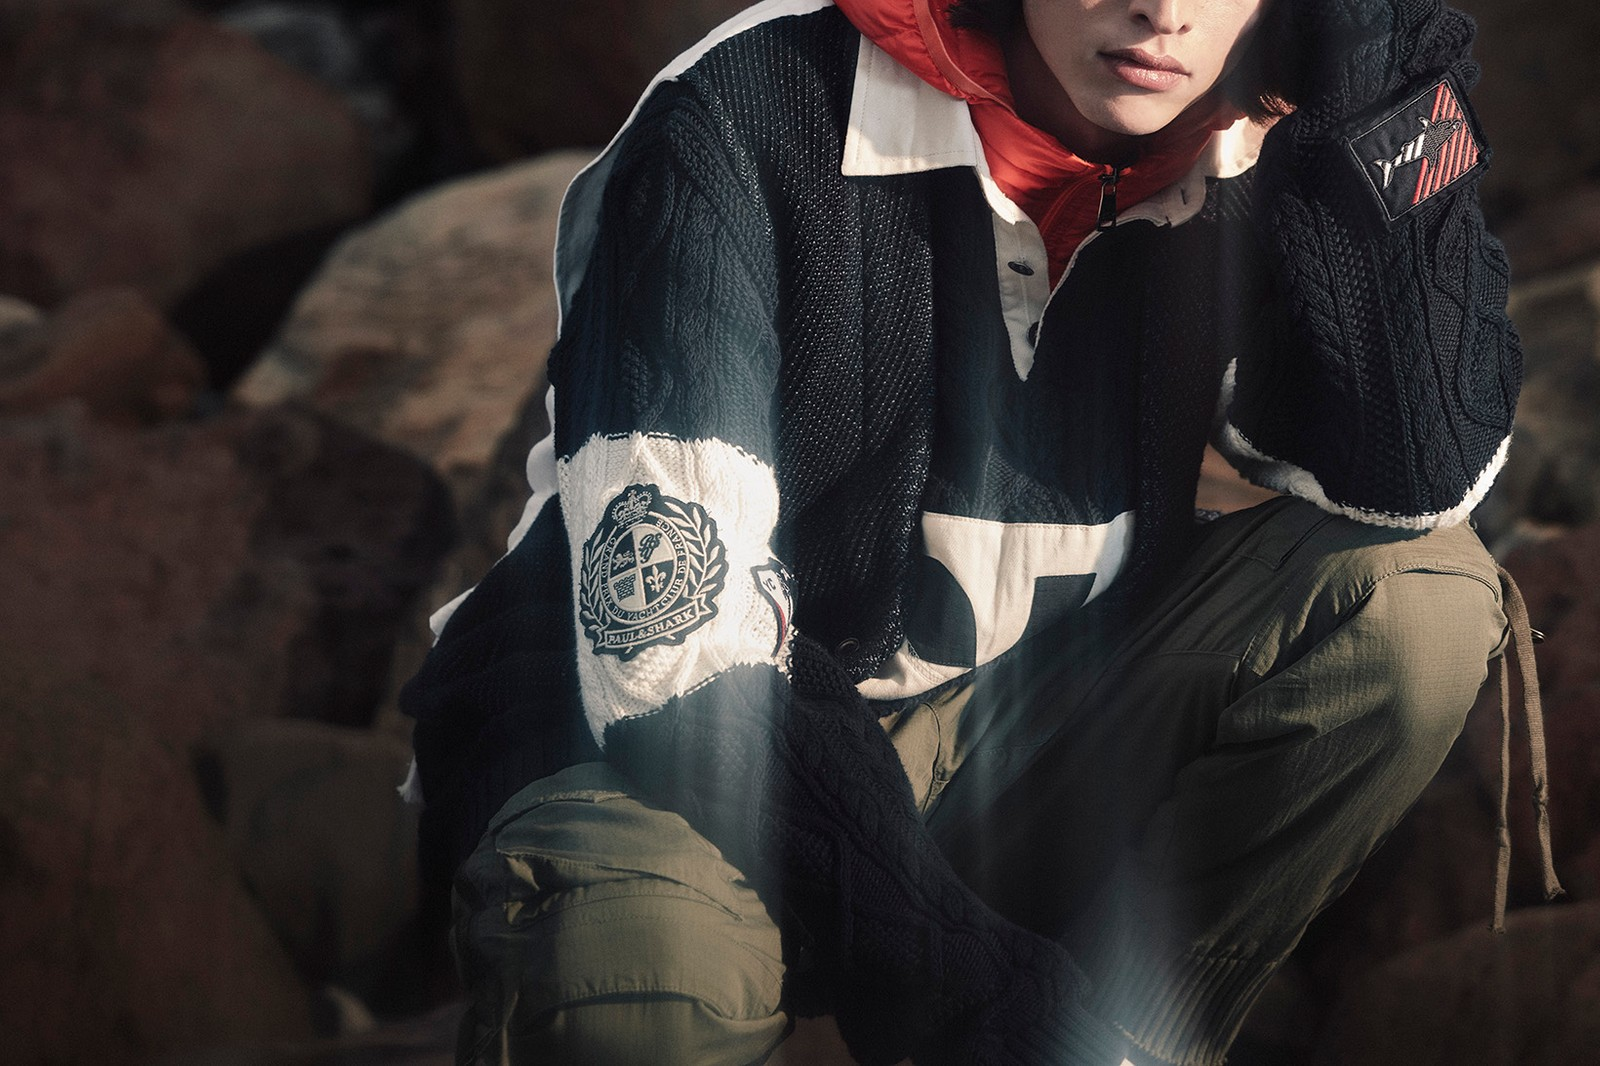 Paul&Shark Presents Latest Greg Lauren Collaboration collection Decnostruct